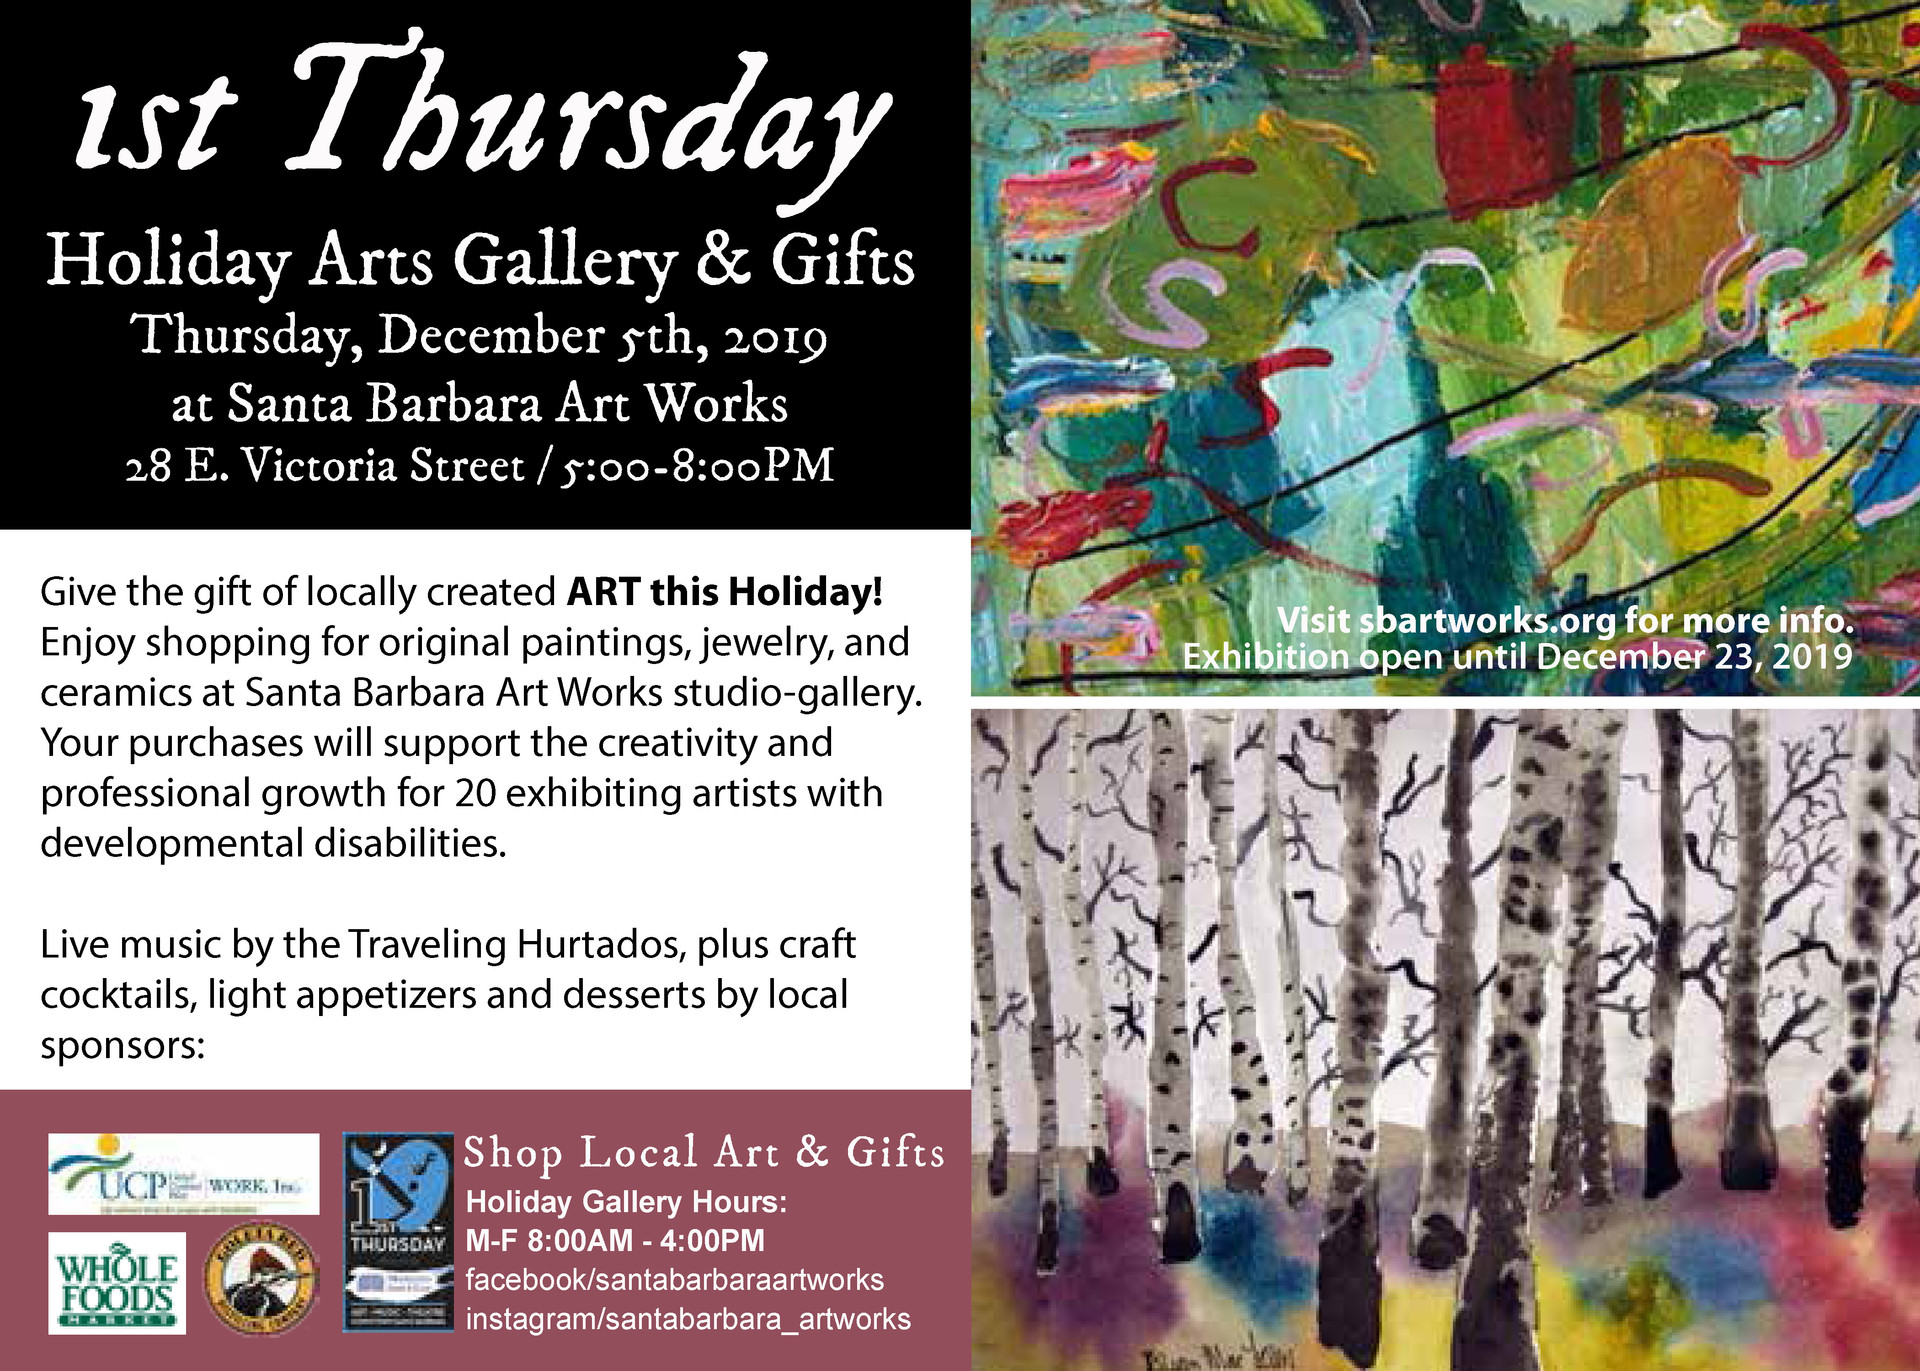 1st Thursday Holiday Arts & Gifts